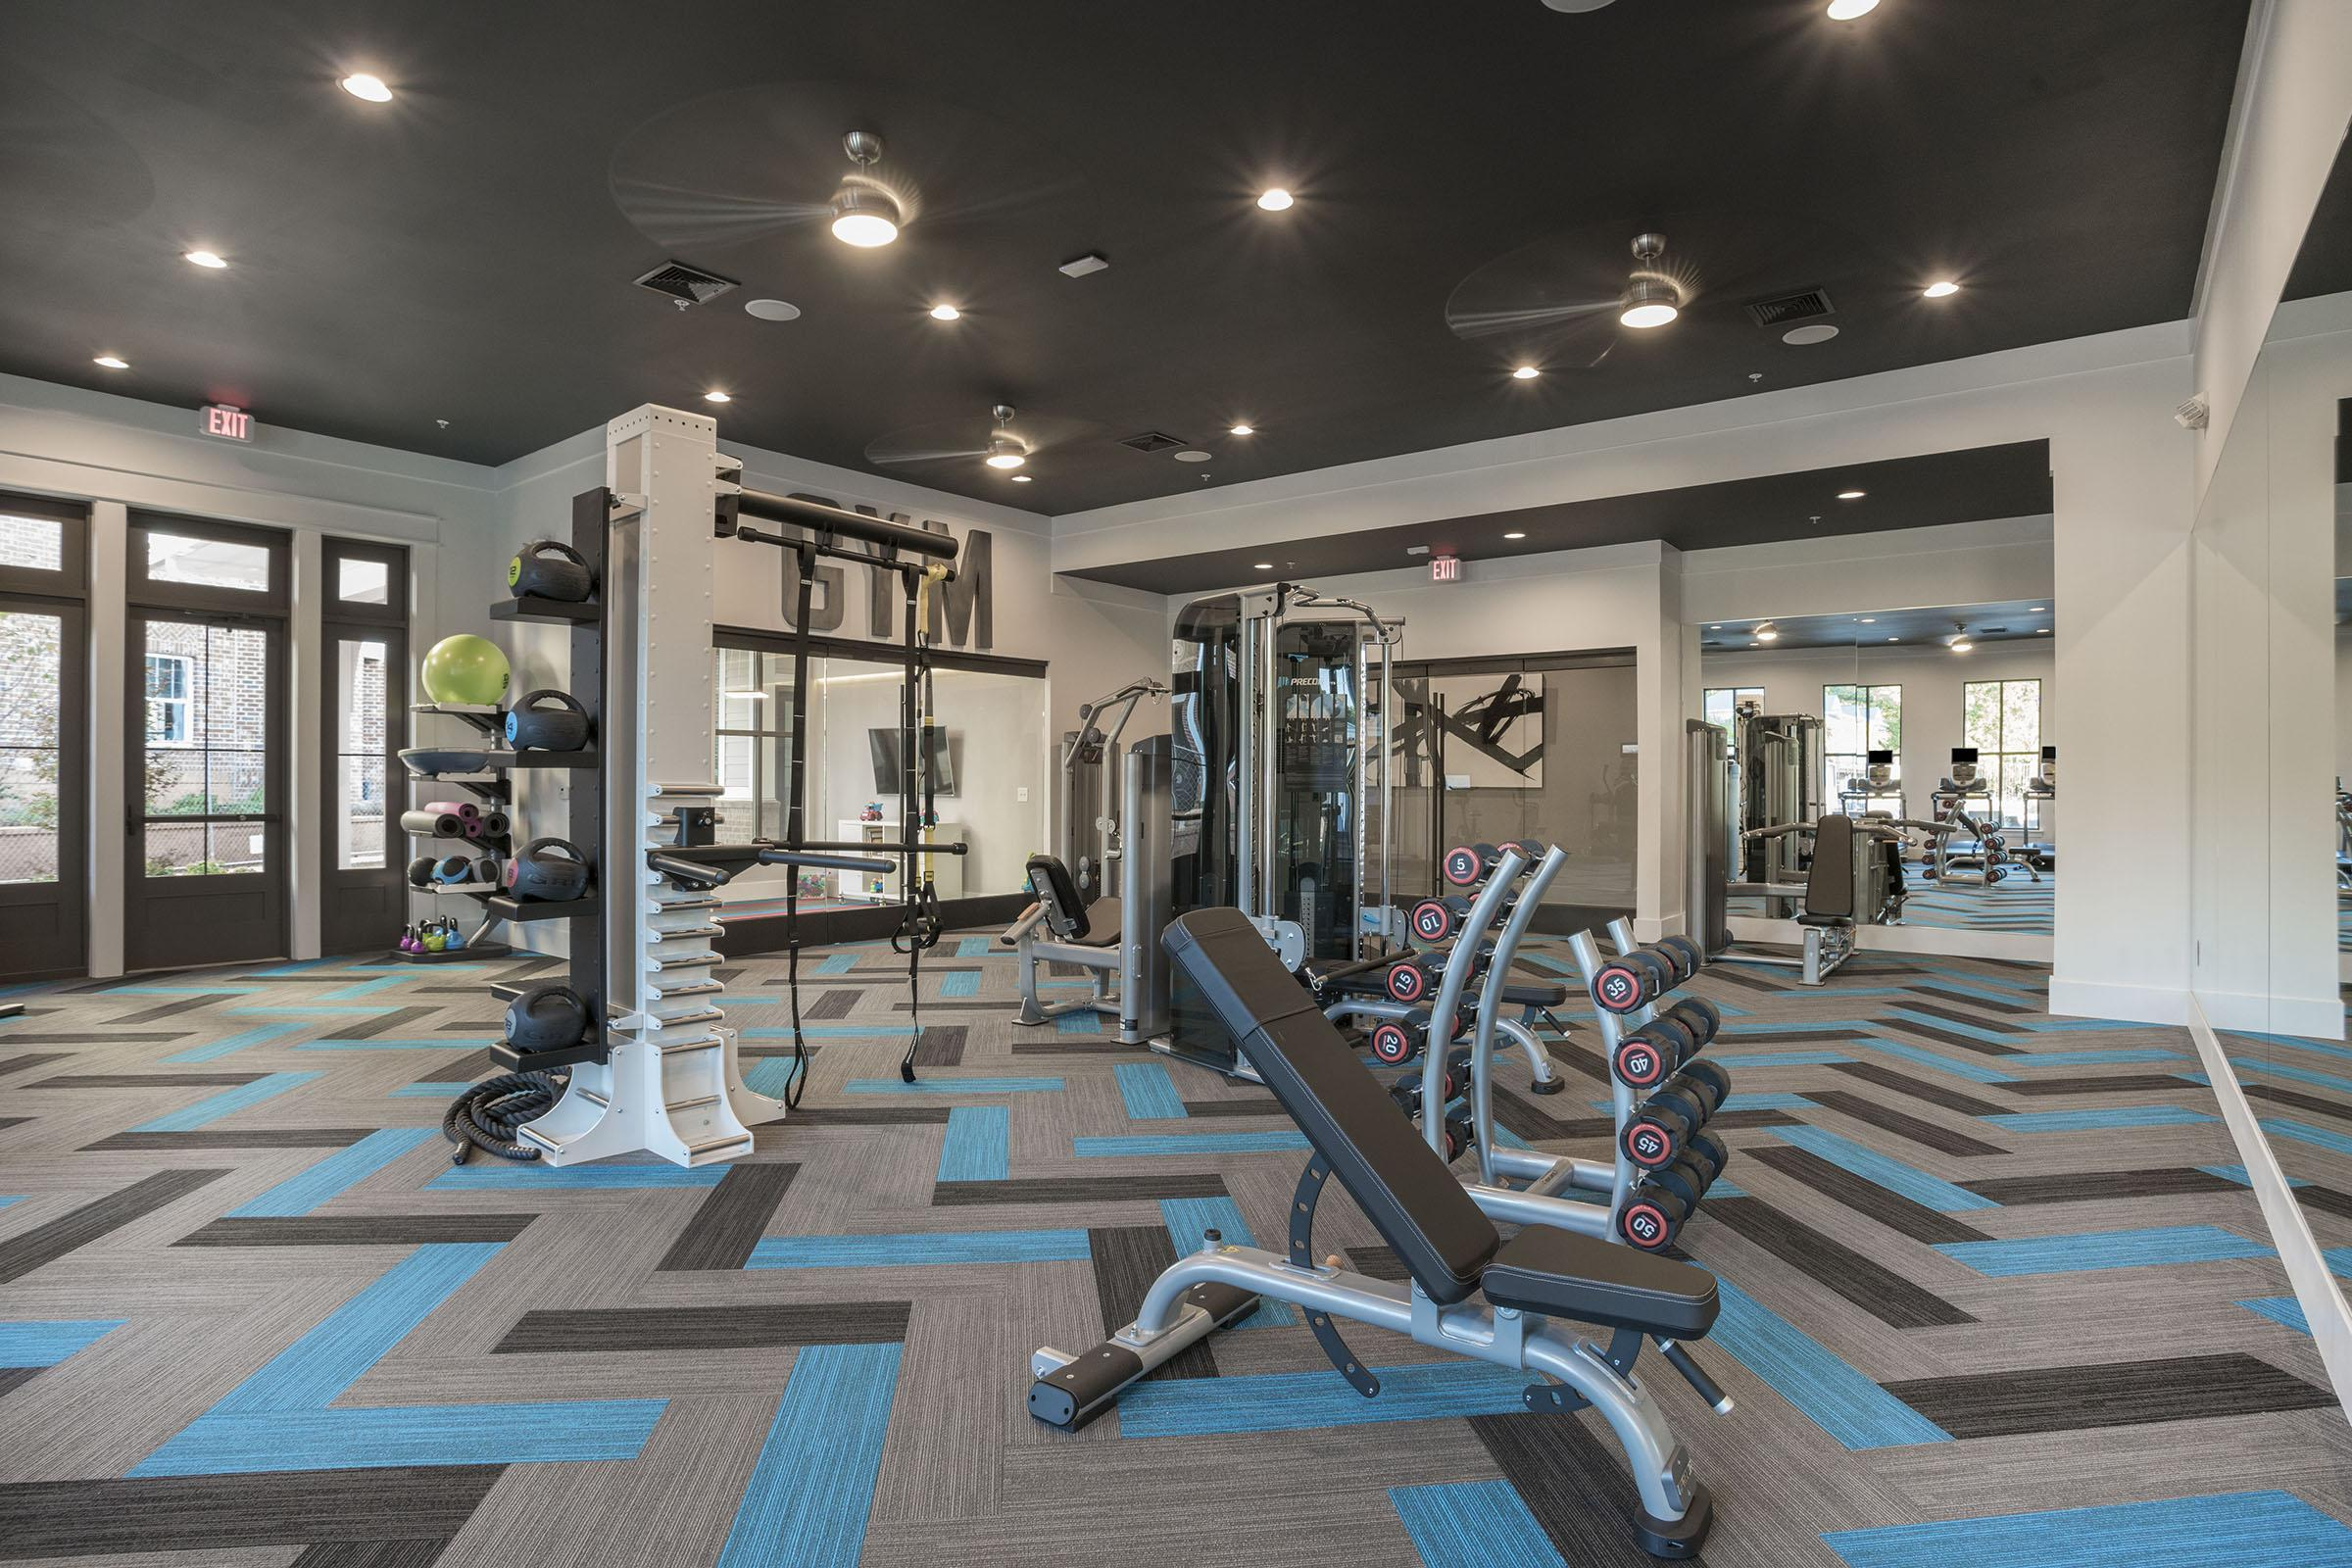 PROSPERITY-VILLAGE-APARTMENTS-CHARLOTTE-NC-FITNESS-CENTER-02.jpg